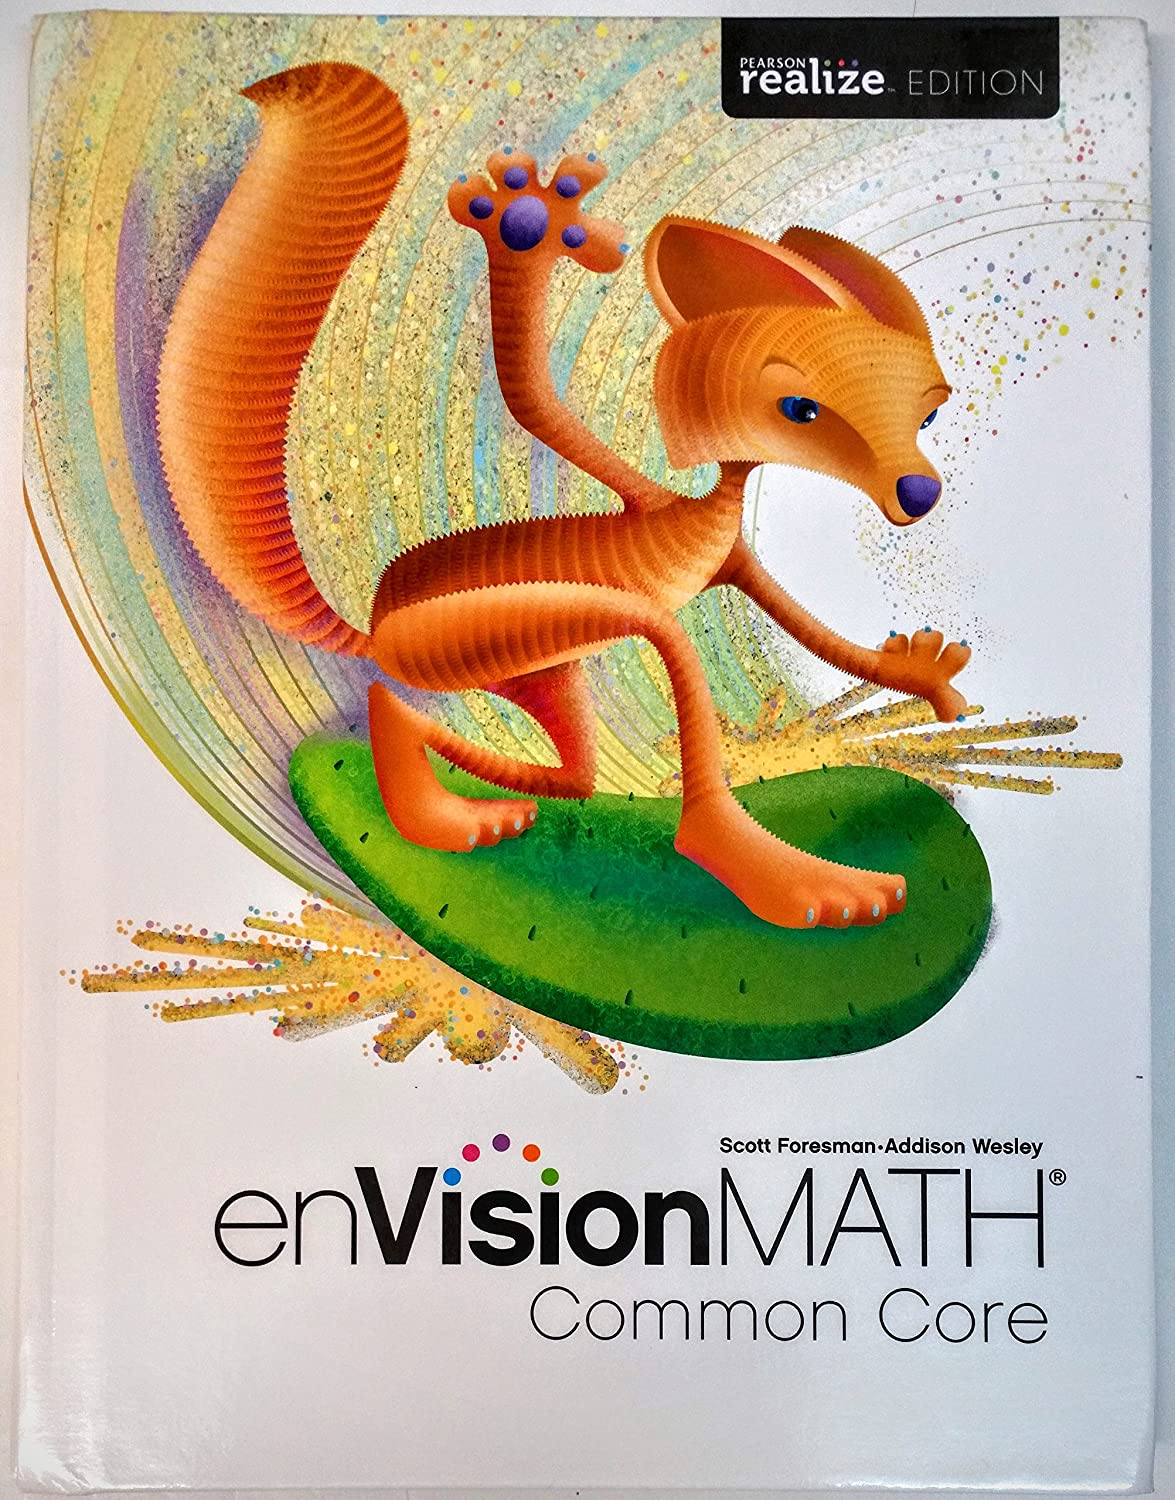 Workbooks envision math workbook grade 6 : Amazon.com: enVision Math Common Core Realize Edition, Grade 6 ...